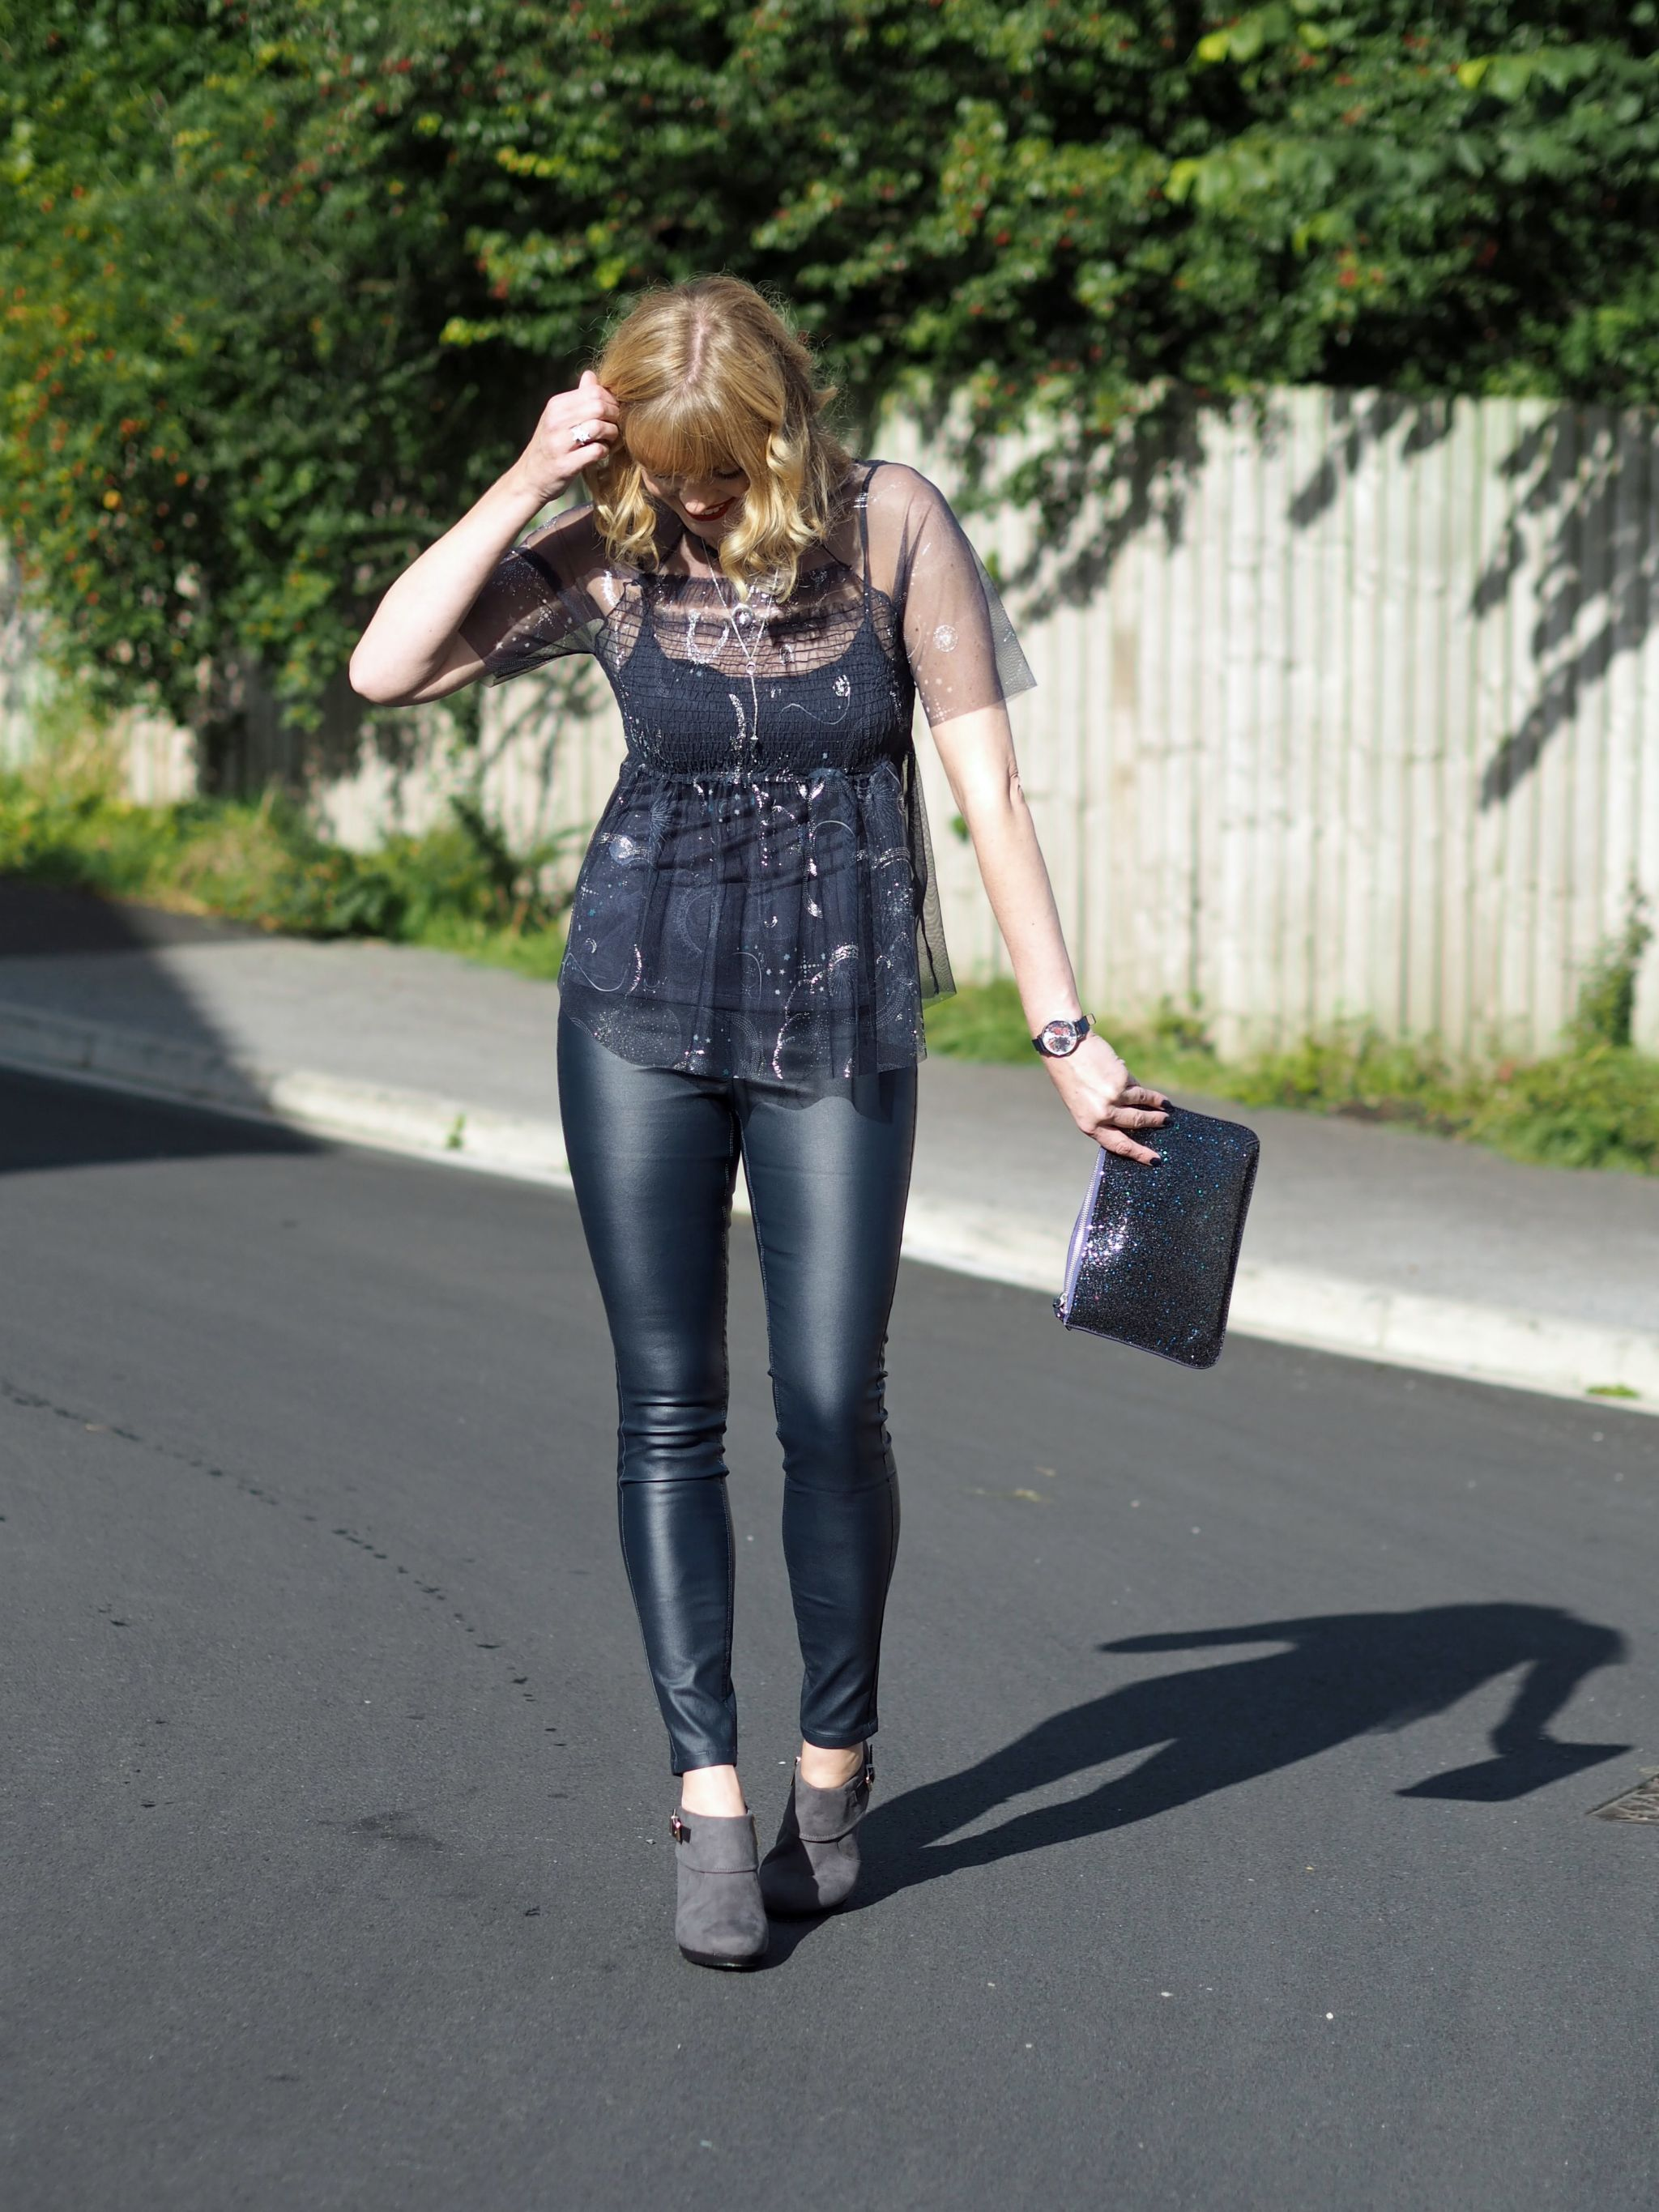 what-lizzy-loves-coated-skinnies-leggings-high-heeled-ankle-boots-constellation-top-glitter-clutch